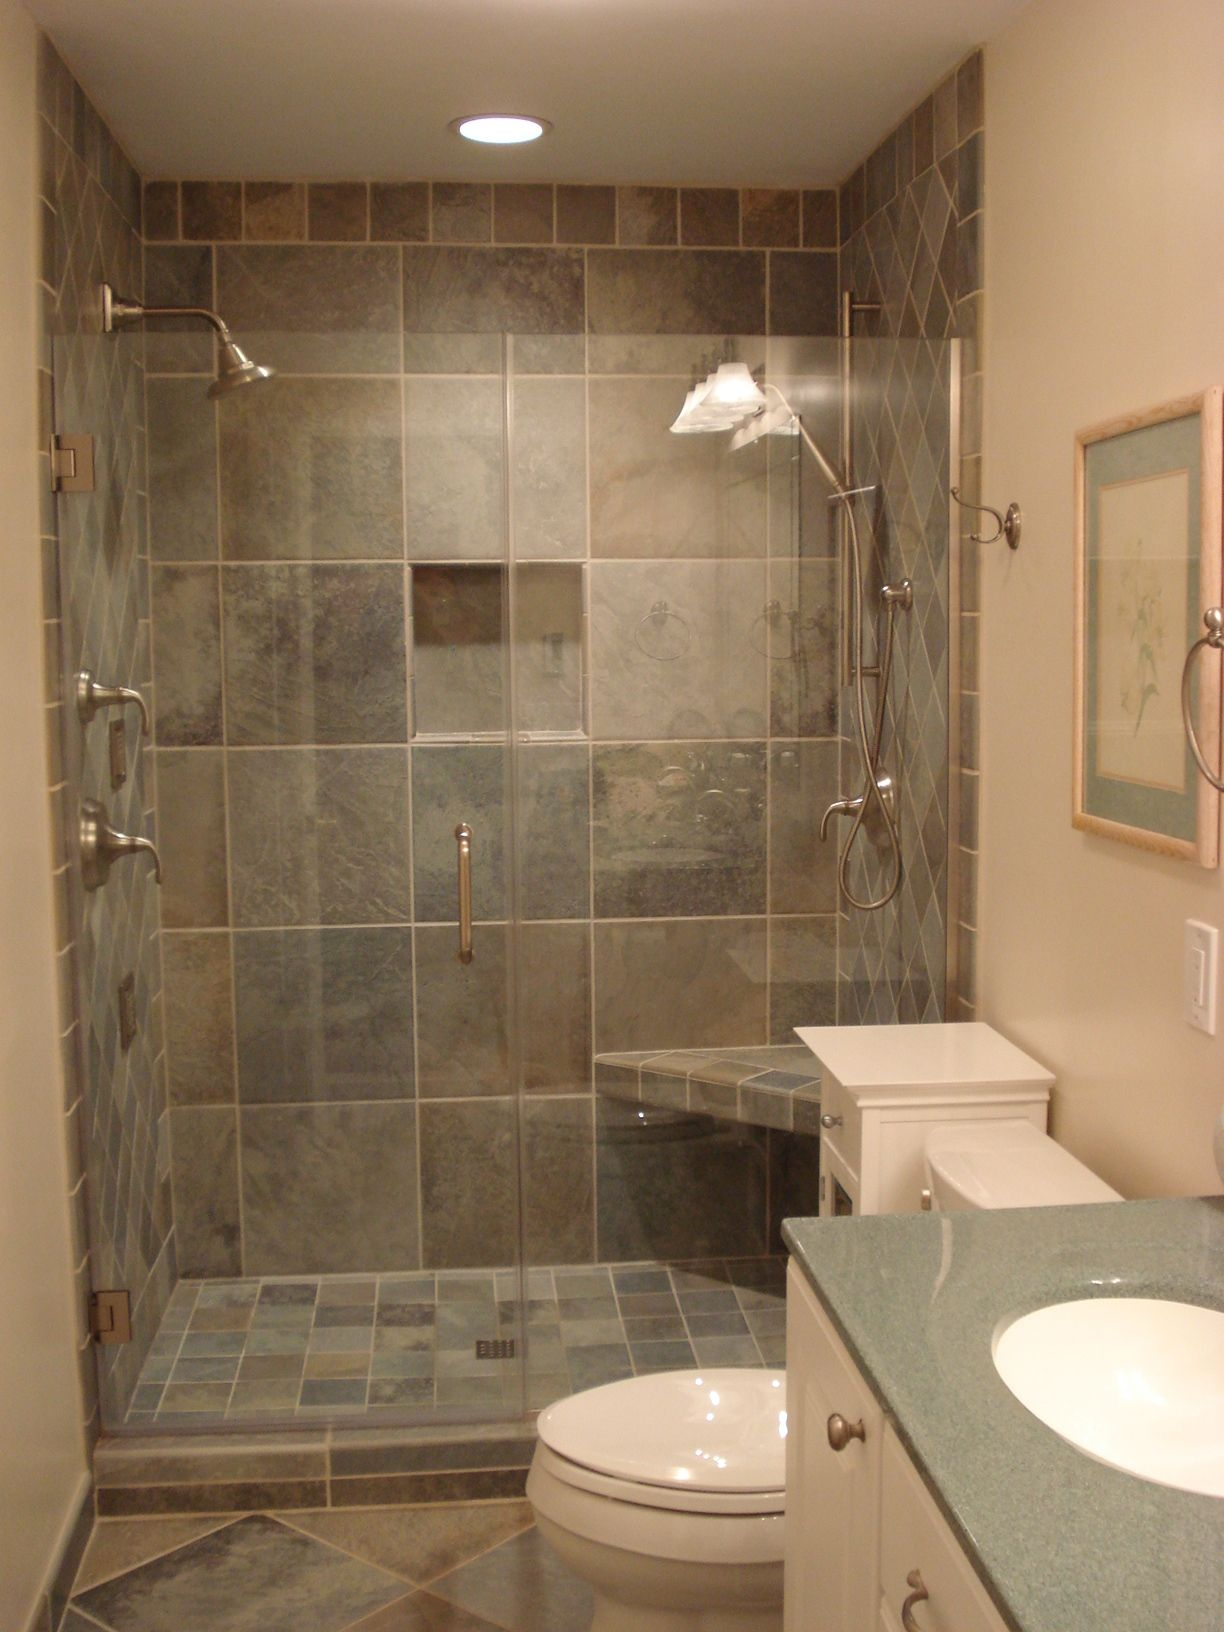 bath quality remodeling remodel img renovations high indianapolis contractors bathroom